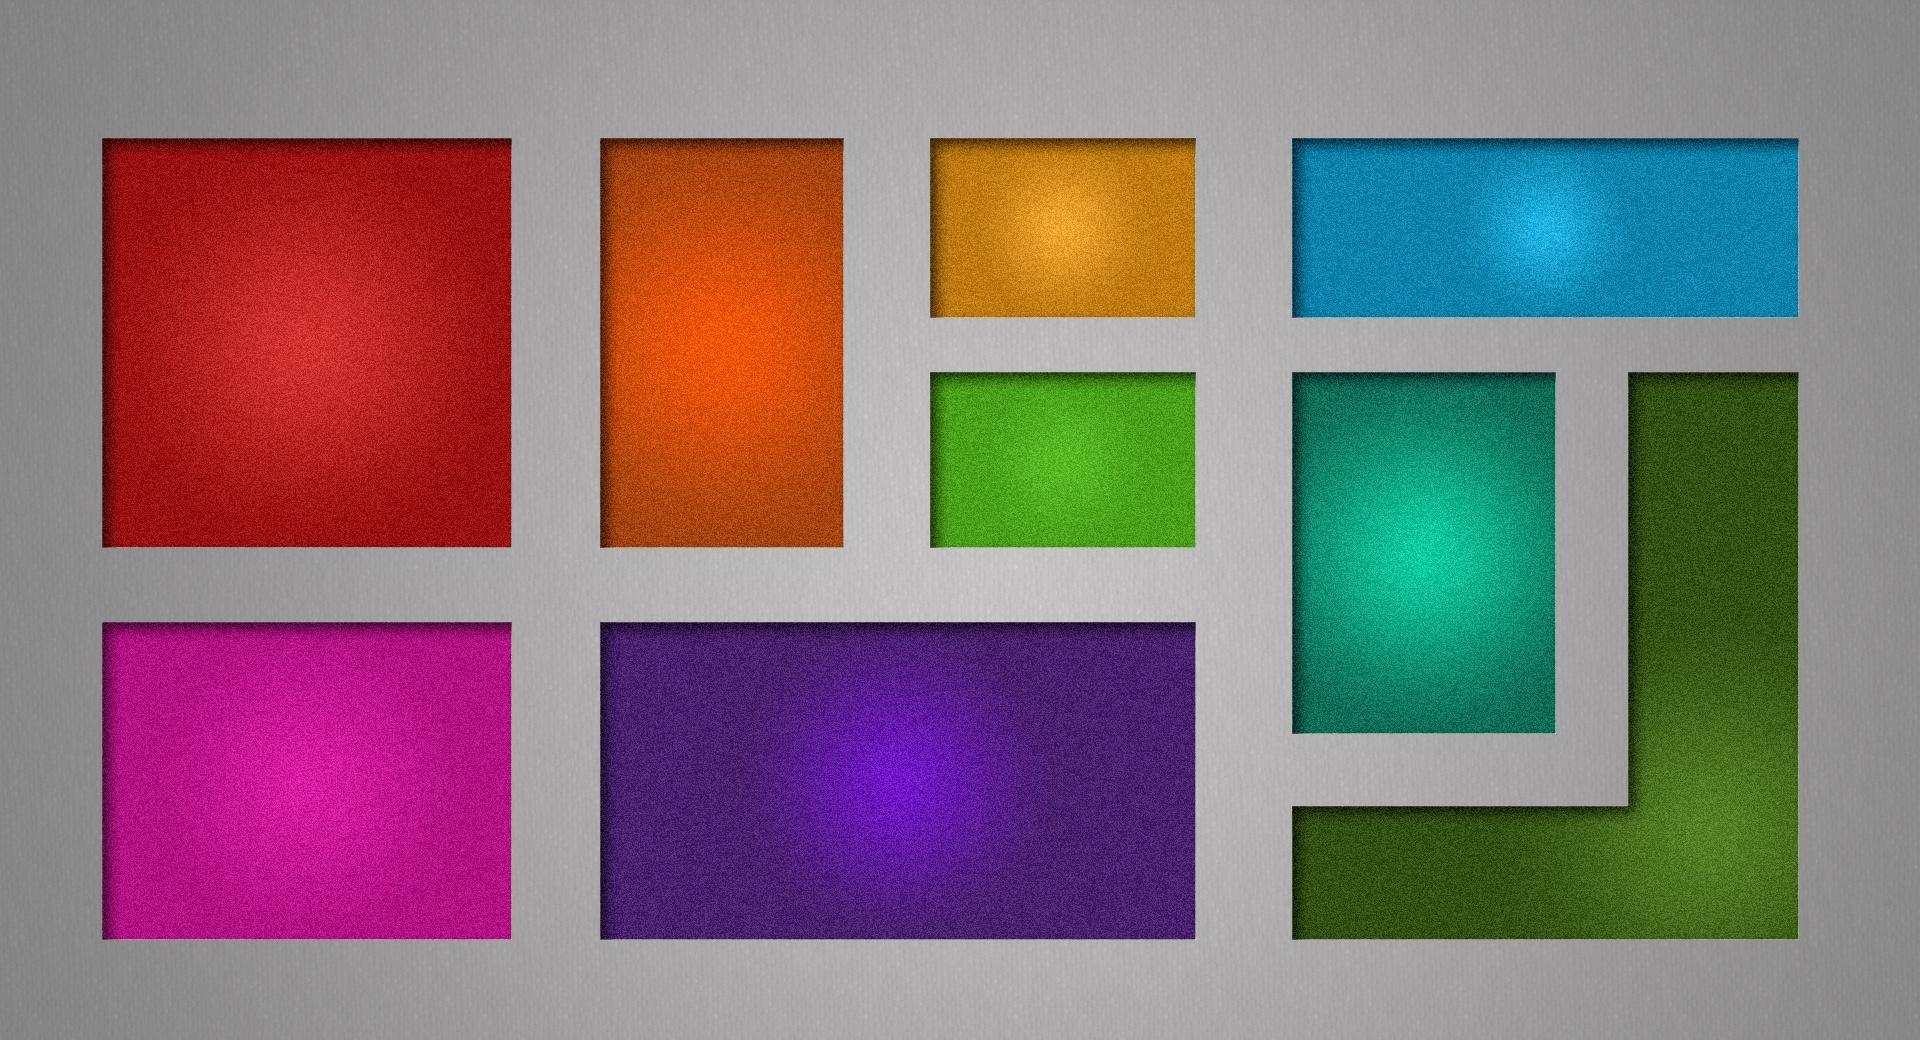 Box On Wall wallpapers HD quality